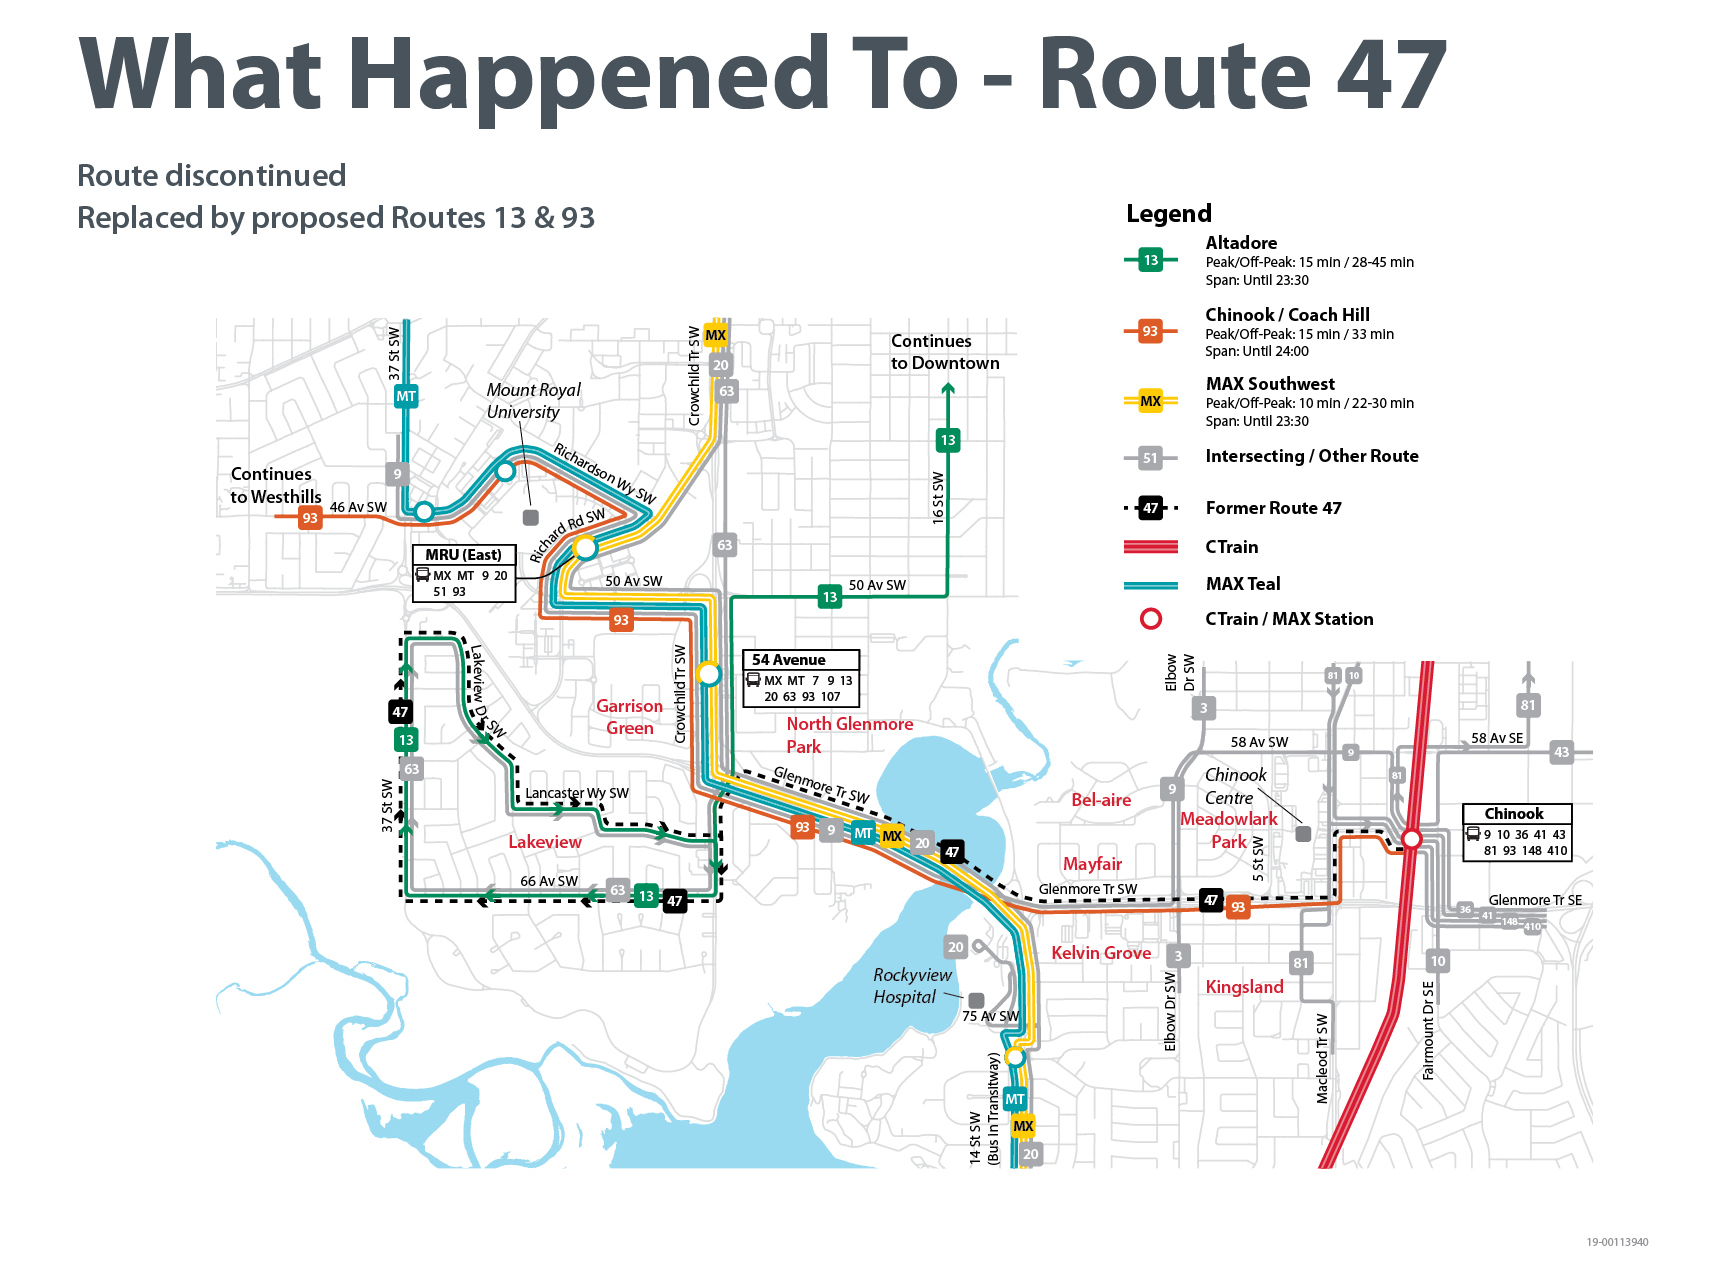 ​What Happened to Route 47